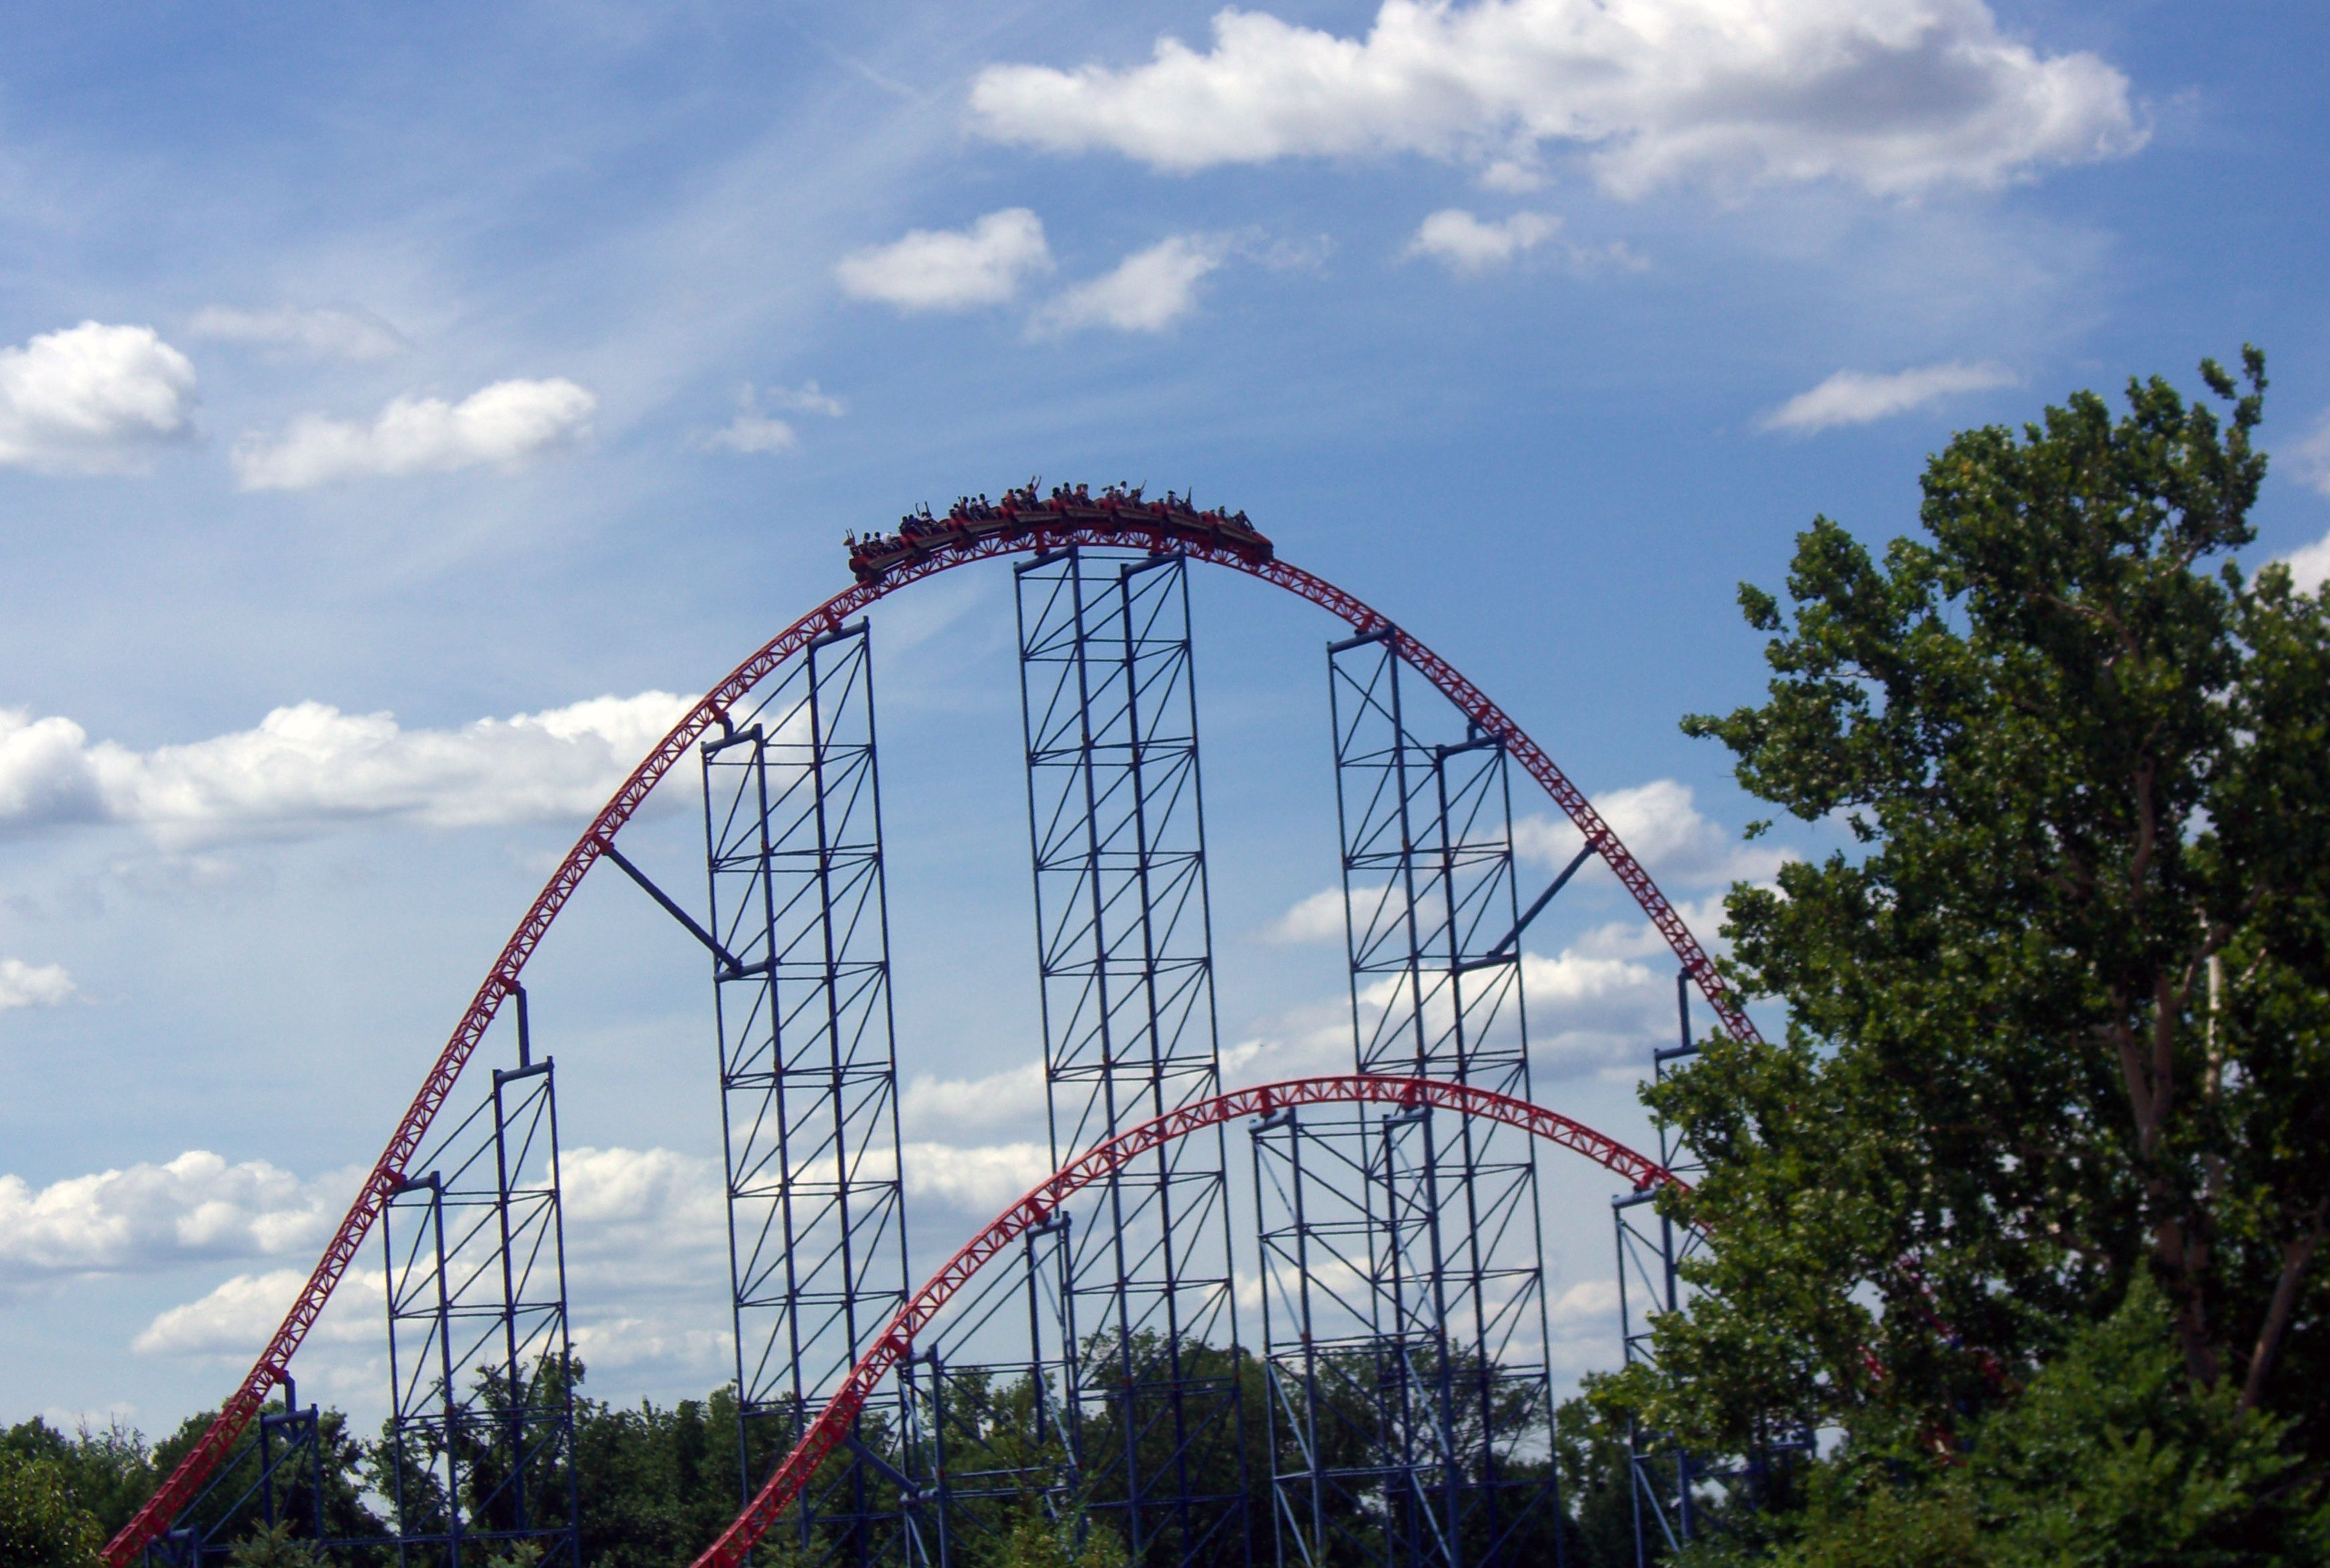 Superman Ride of Steel coaster at Six Flags America